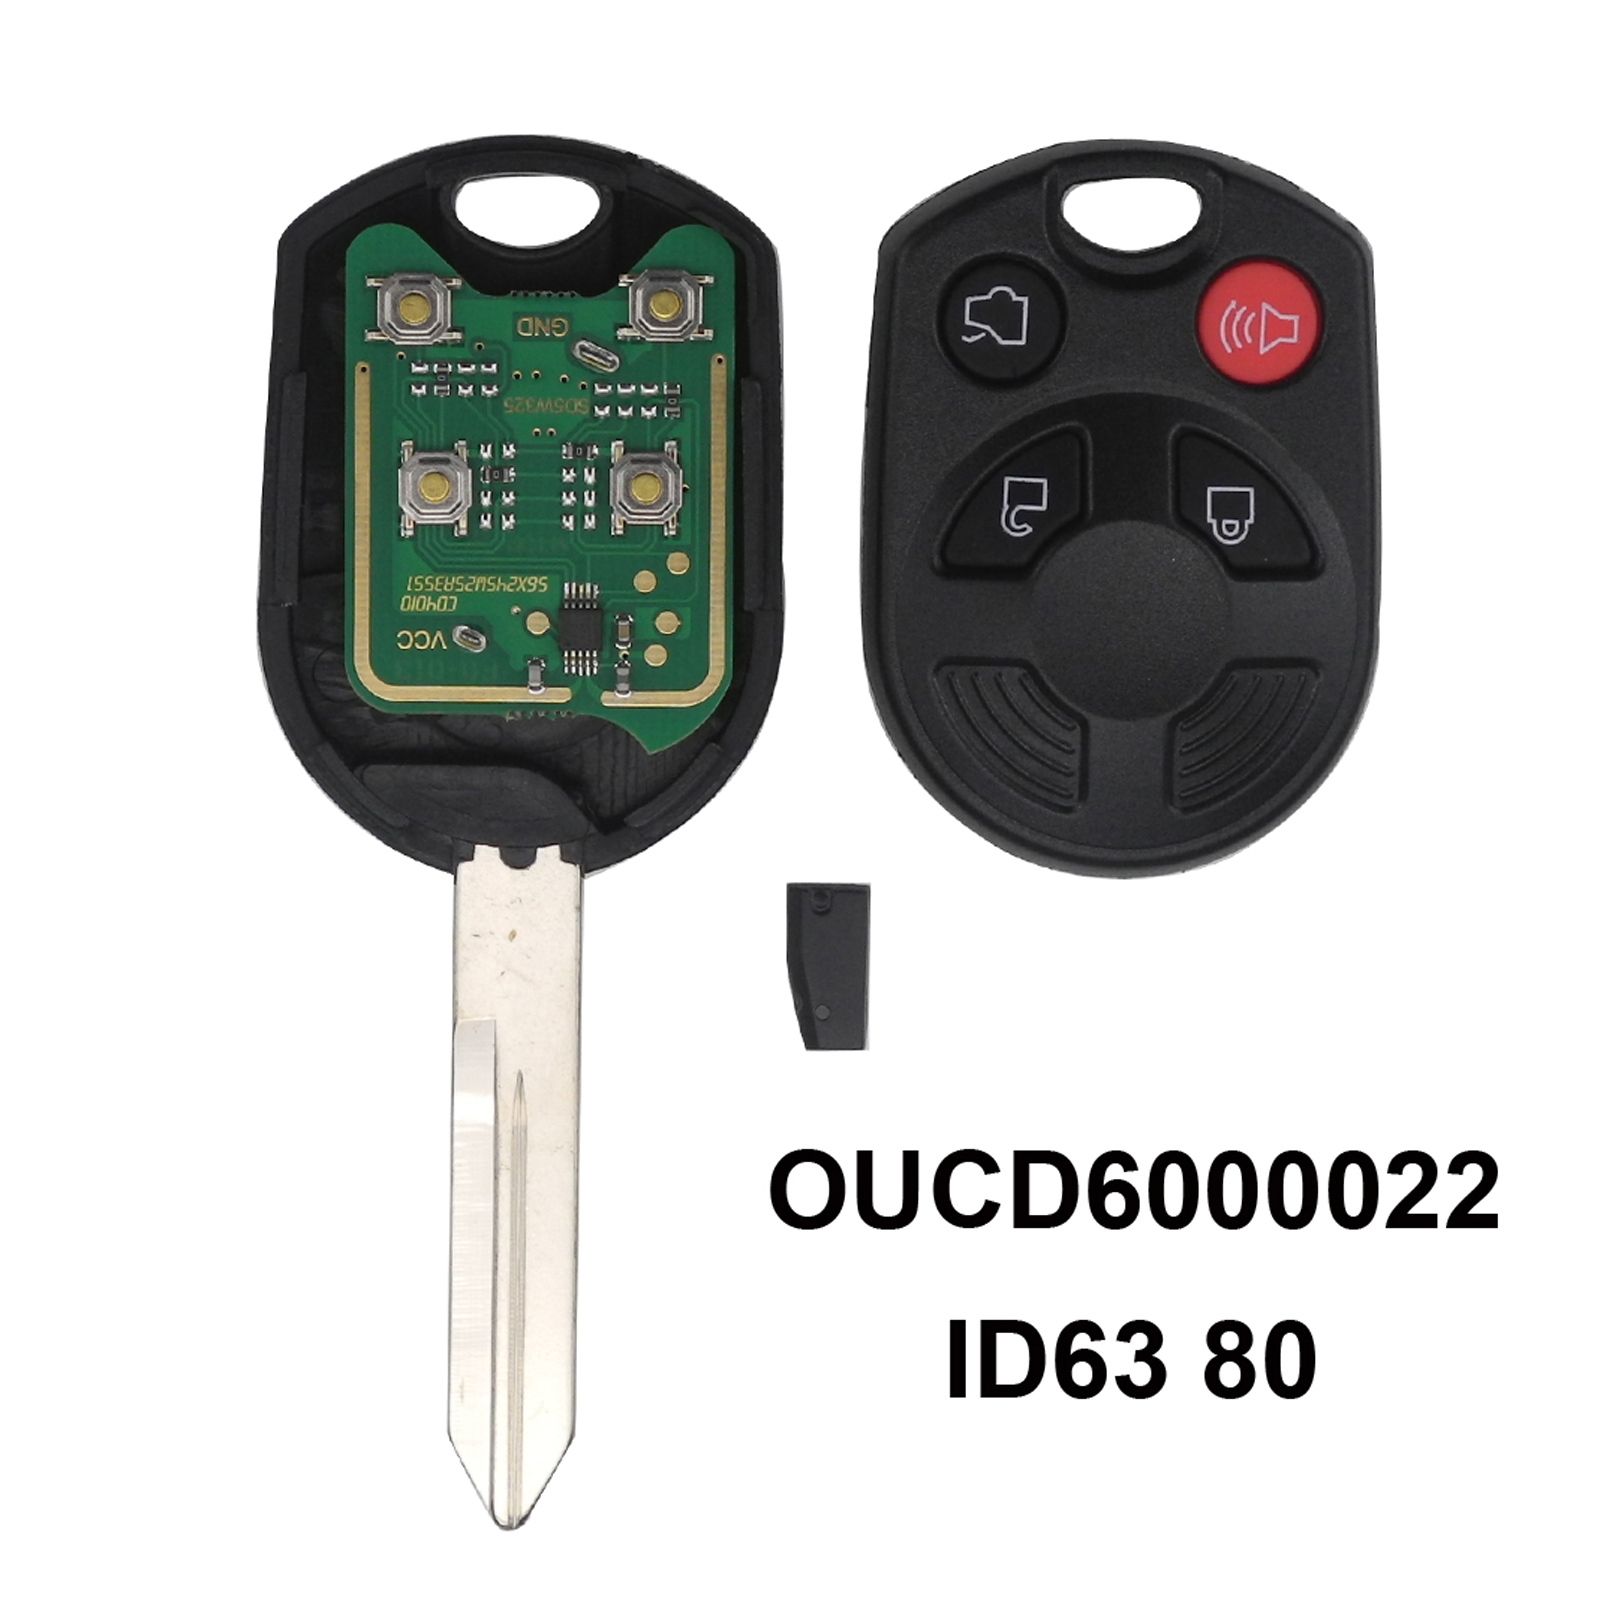 4 Buttons Complete Car Key Remote for Ford Escape Keyless Shell Entry Combo FOB Remote OUCD6000022 With ID63 Chip 80(China)